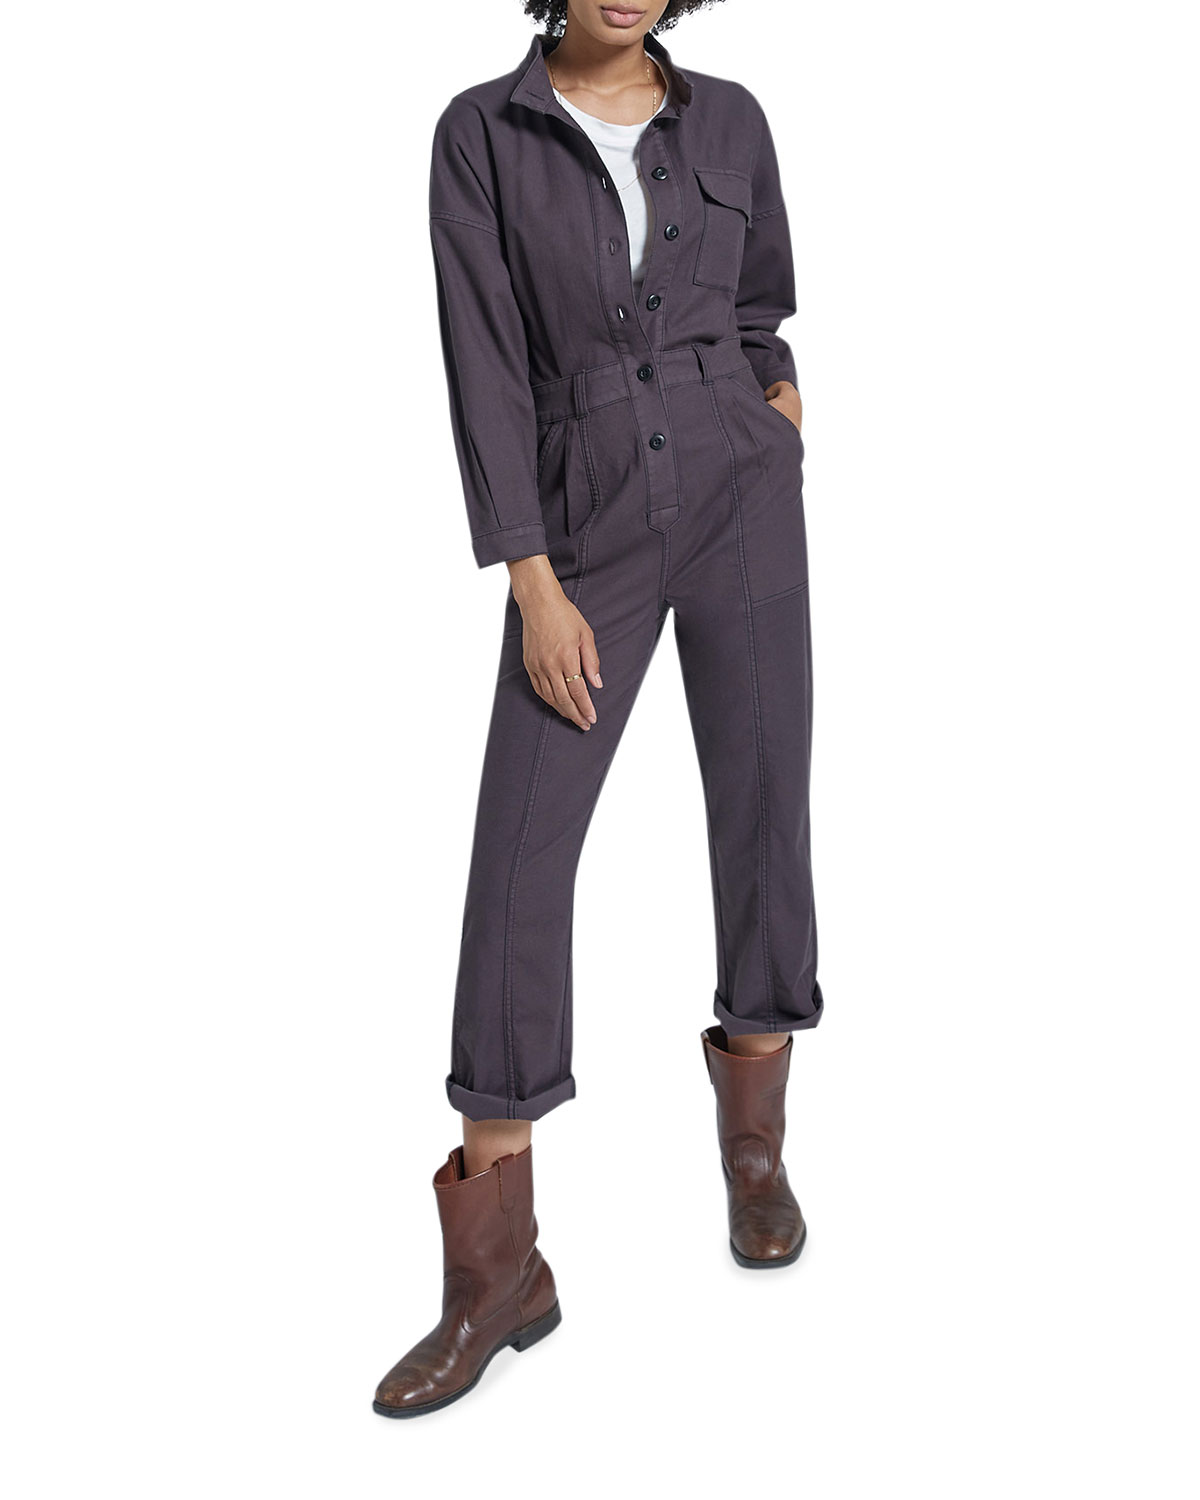 The Meta Coverall Jumpsuit